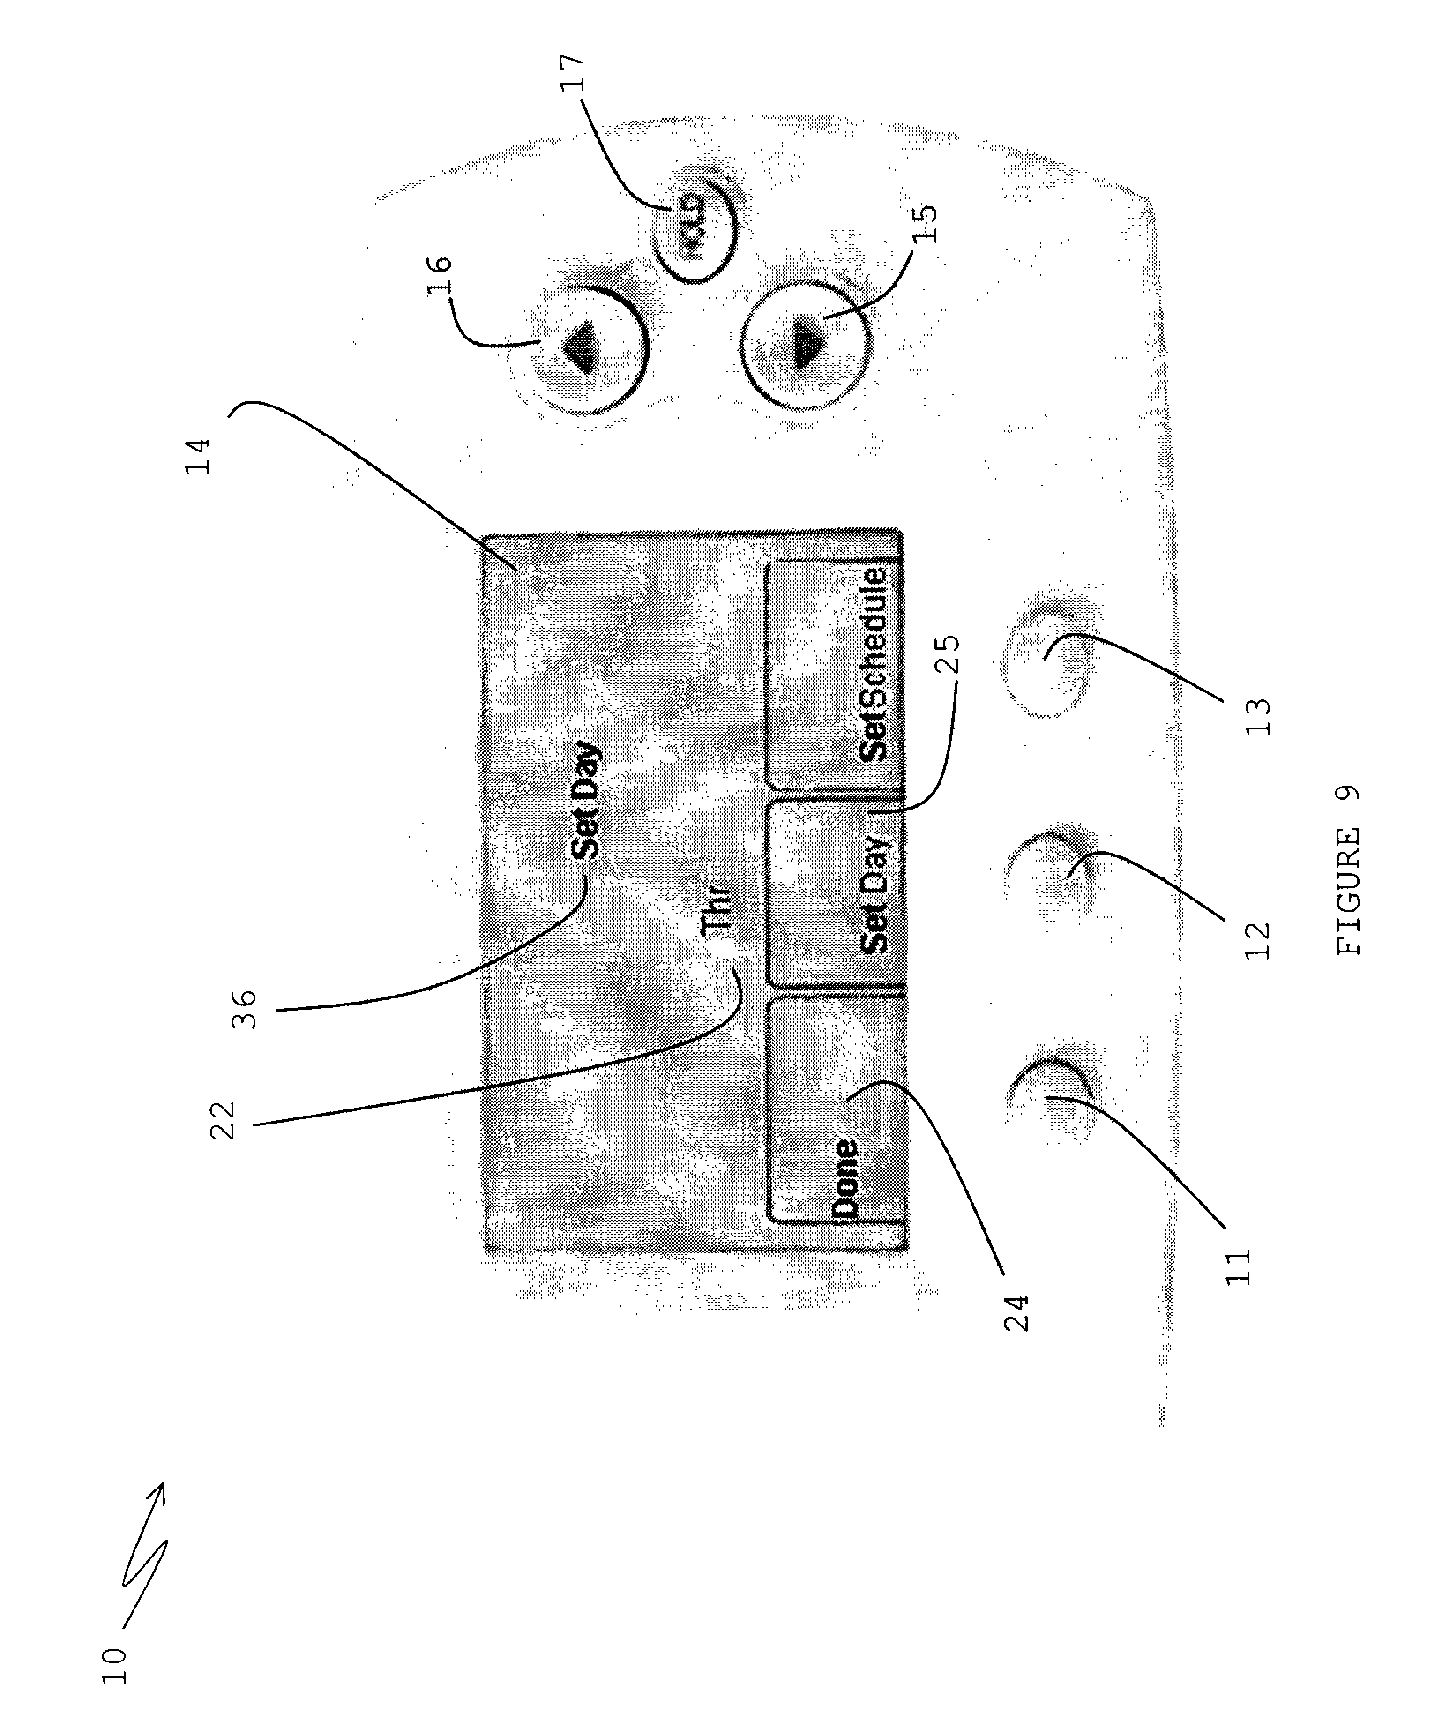 Patent Us7584897 Controller System User Interface Google Patents Hunter 44550 Wiring Diagram Drawing